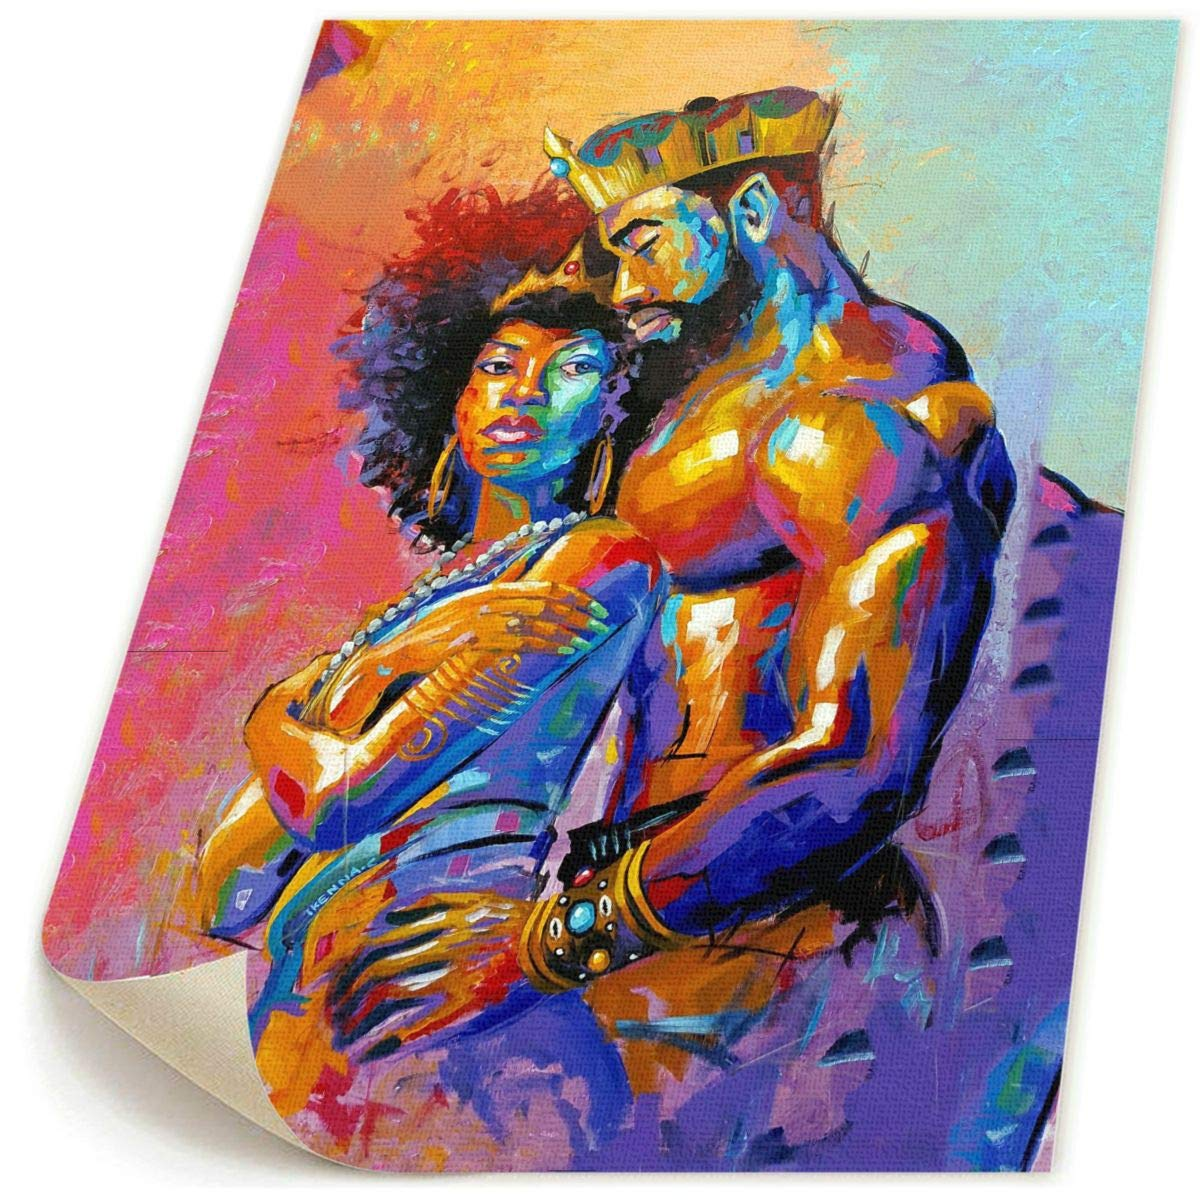 Okoart 18 X22 Canvas Wall Art Prints African Queen And King Crown Natural Hair Picture Paintings Contemporary Decorative Giclee Artwork Wall Decor No Frame Buy Online In Kuwait At Desertcart Com Kw Productid 106906361